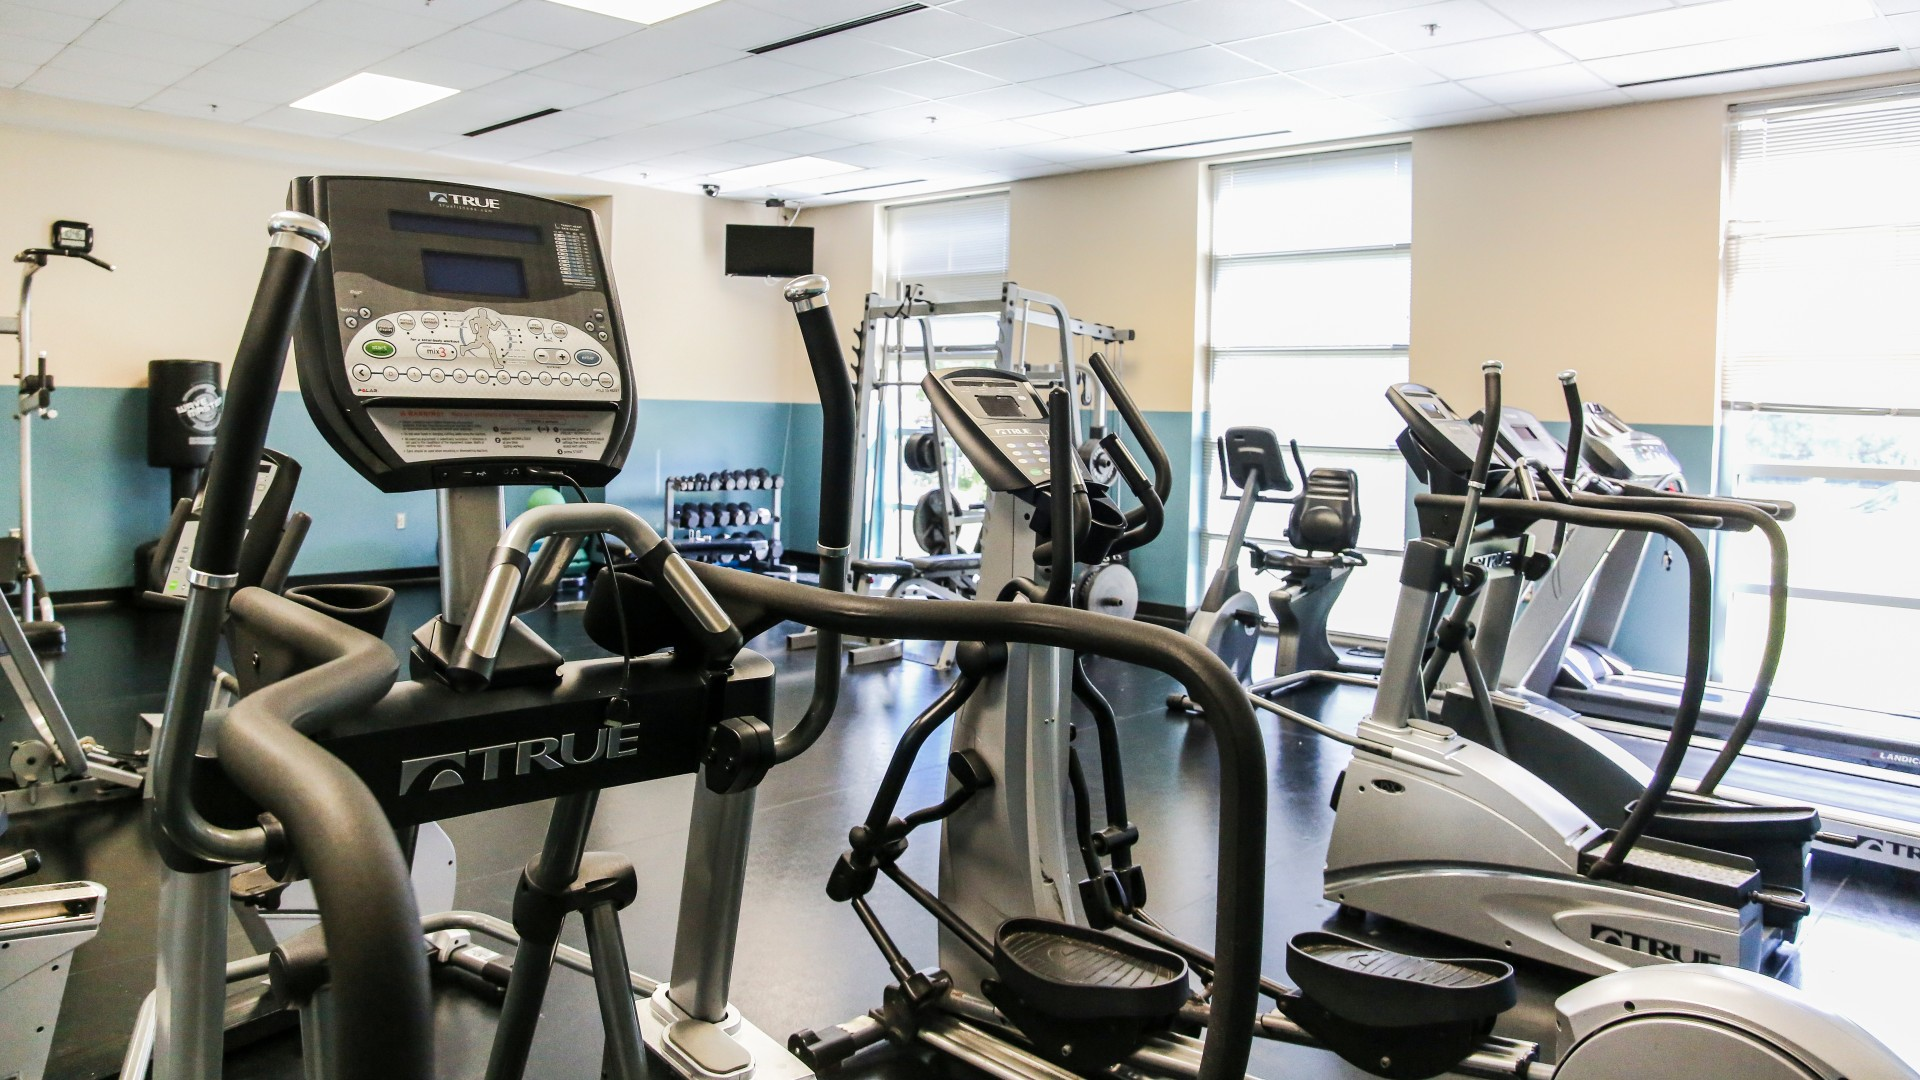 part of Barwell Road Park fitness room with treadmills, bikes, and free weights